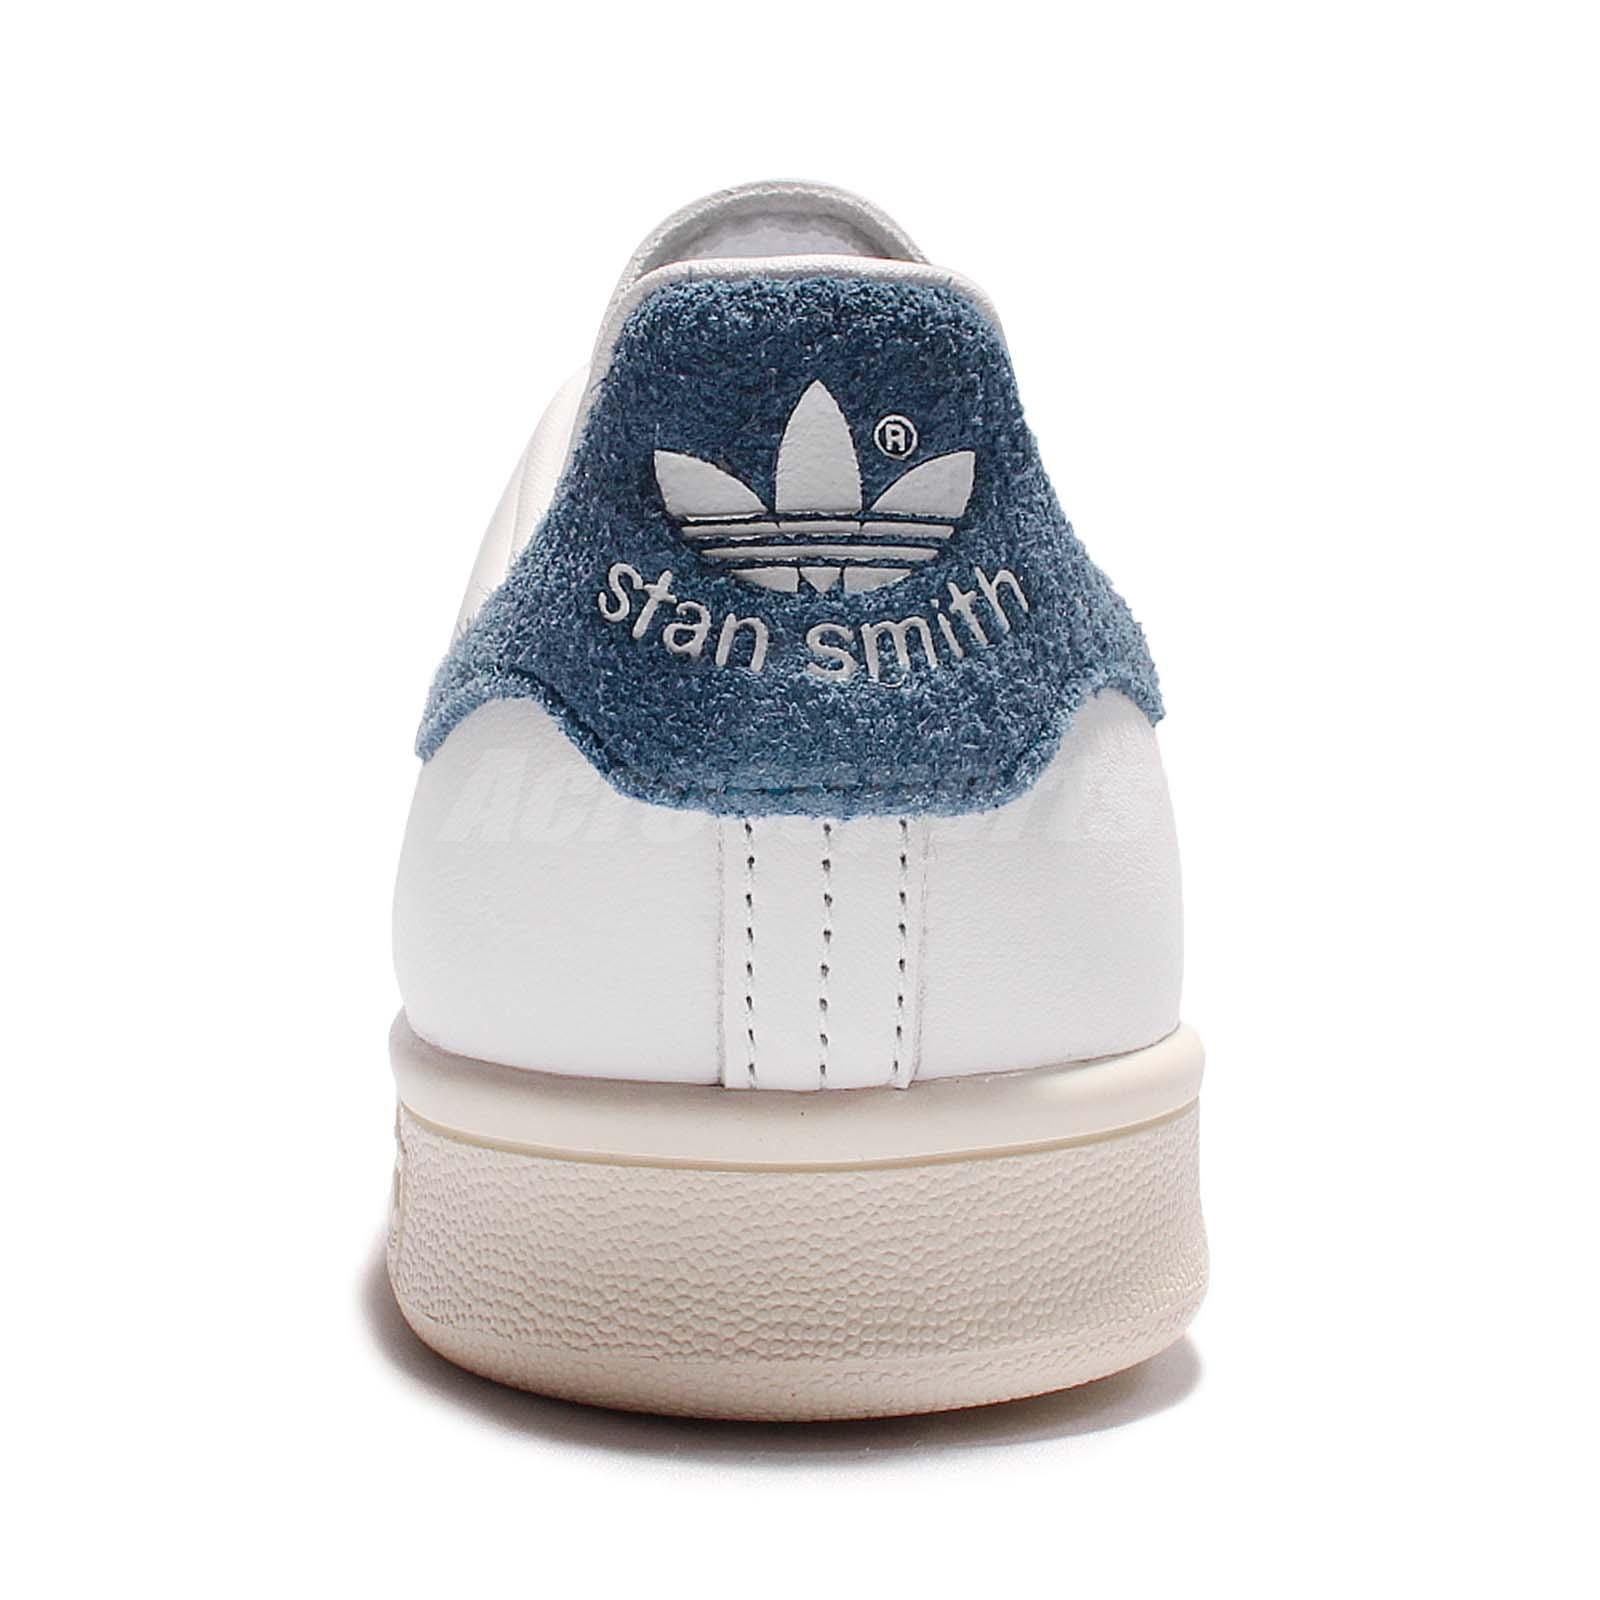 adidas originals stan smith w leather white blue women classic shoes s82259 ebay. Black Bedroom Furniture Sets. Home Design Ideas